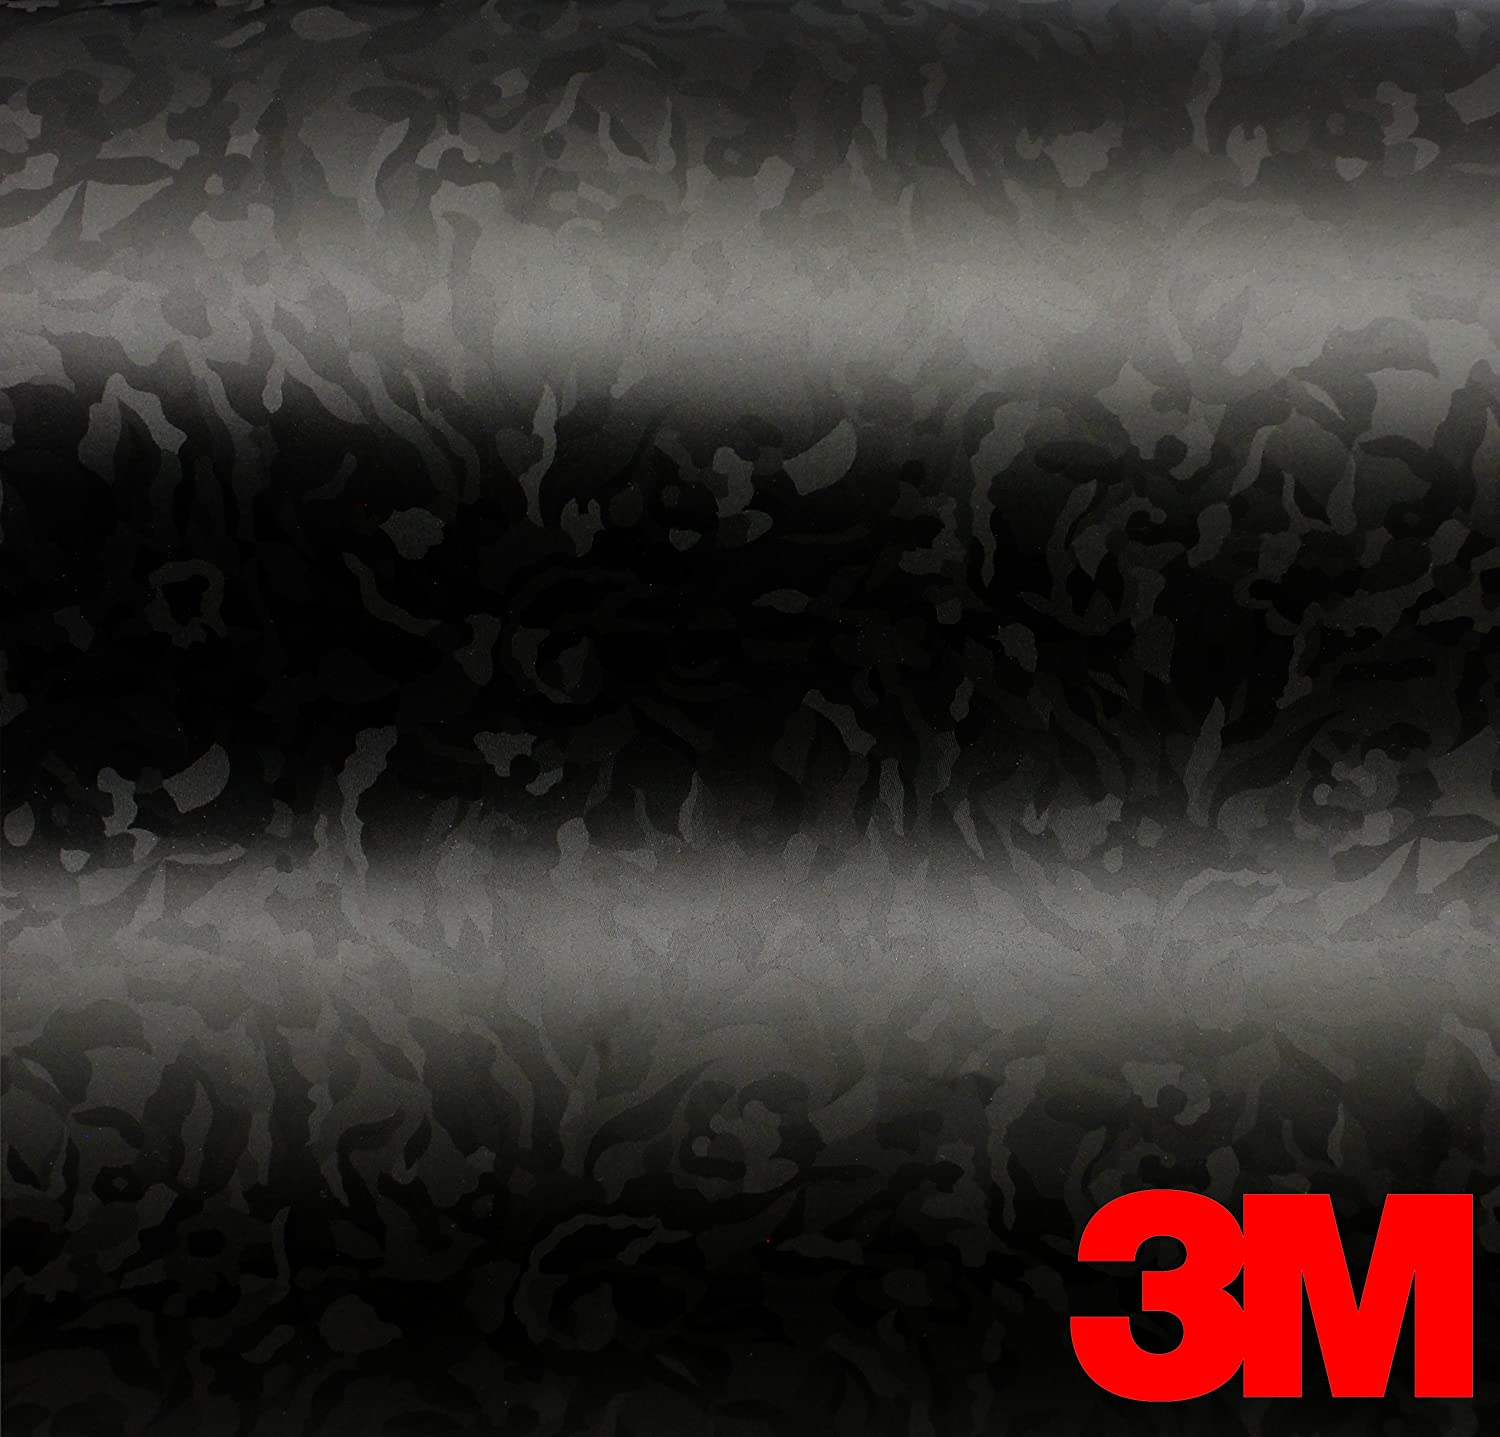 3M Black Shadow Camouflage Automotive Vinyl Featuring Air-Release Adhesive (1ft x 5ft)